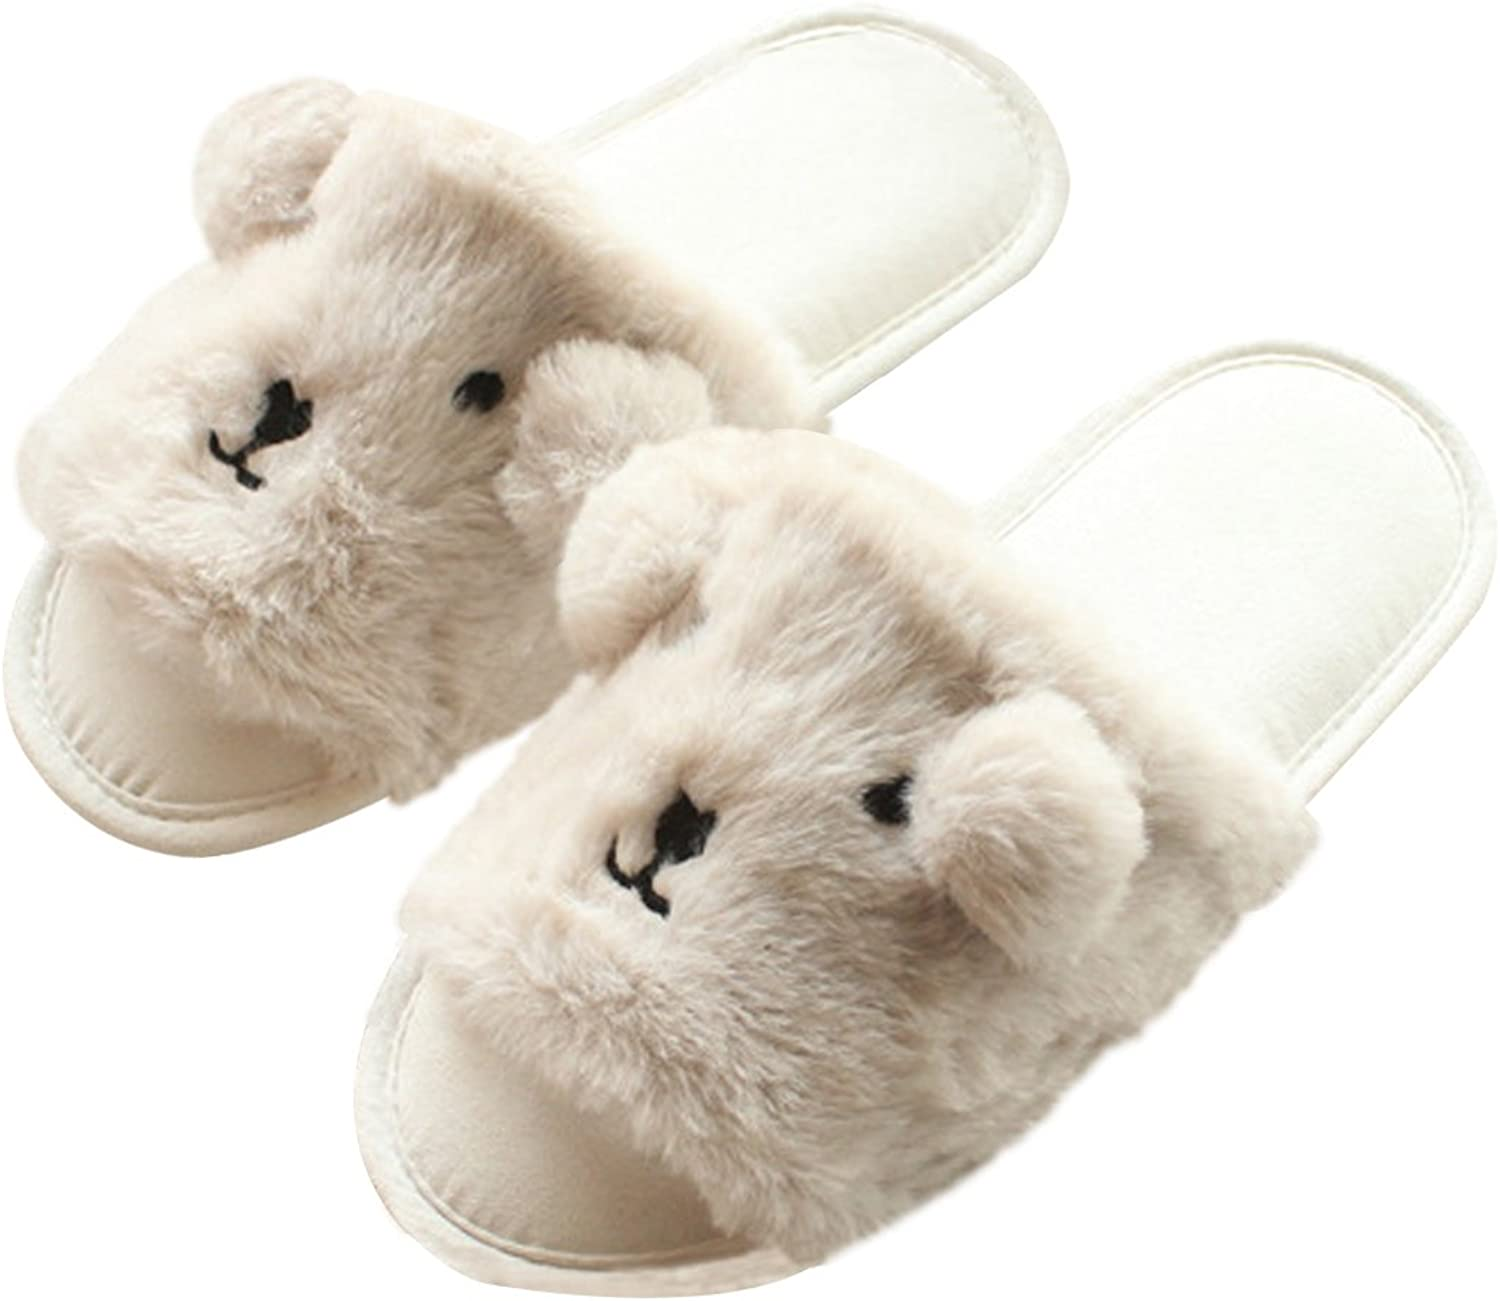 C.C-US Women's Cute Plush Slippers Anti-Slip Soft Sole House Slippers Open Toe Indoor shoes